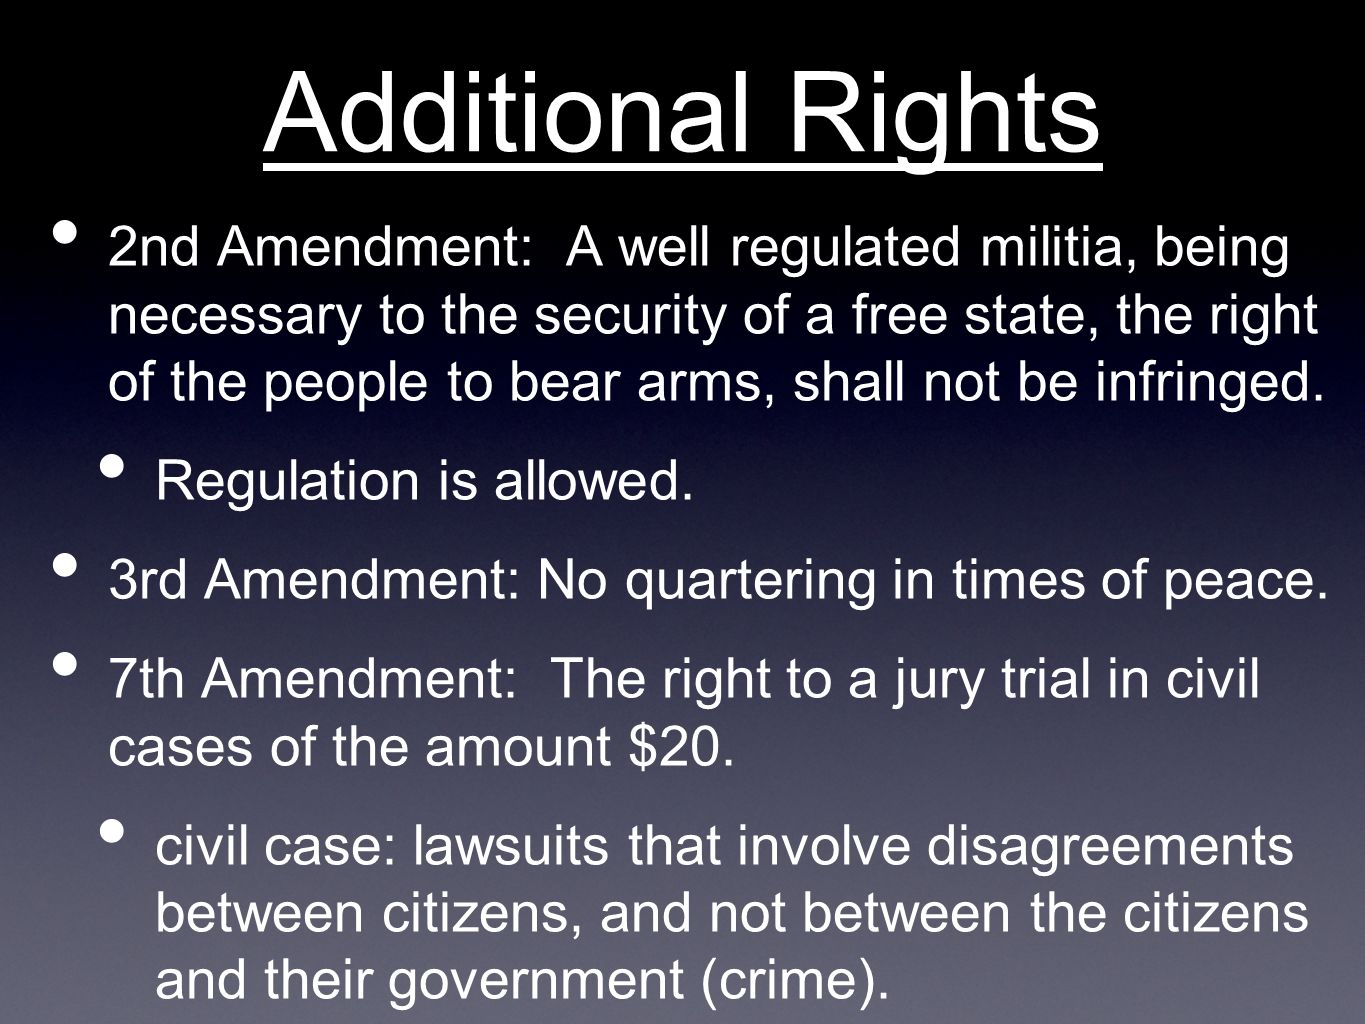 Additional Rights